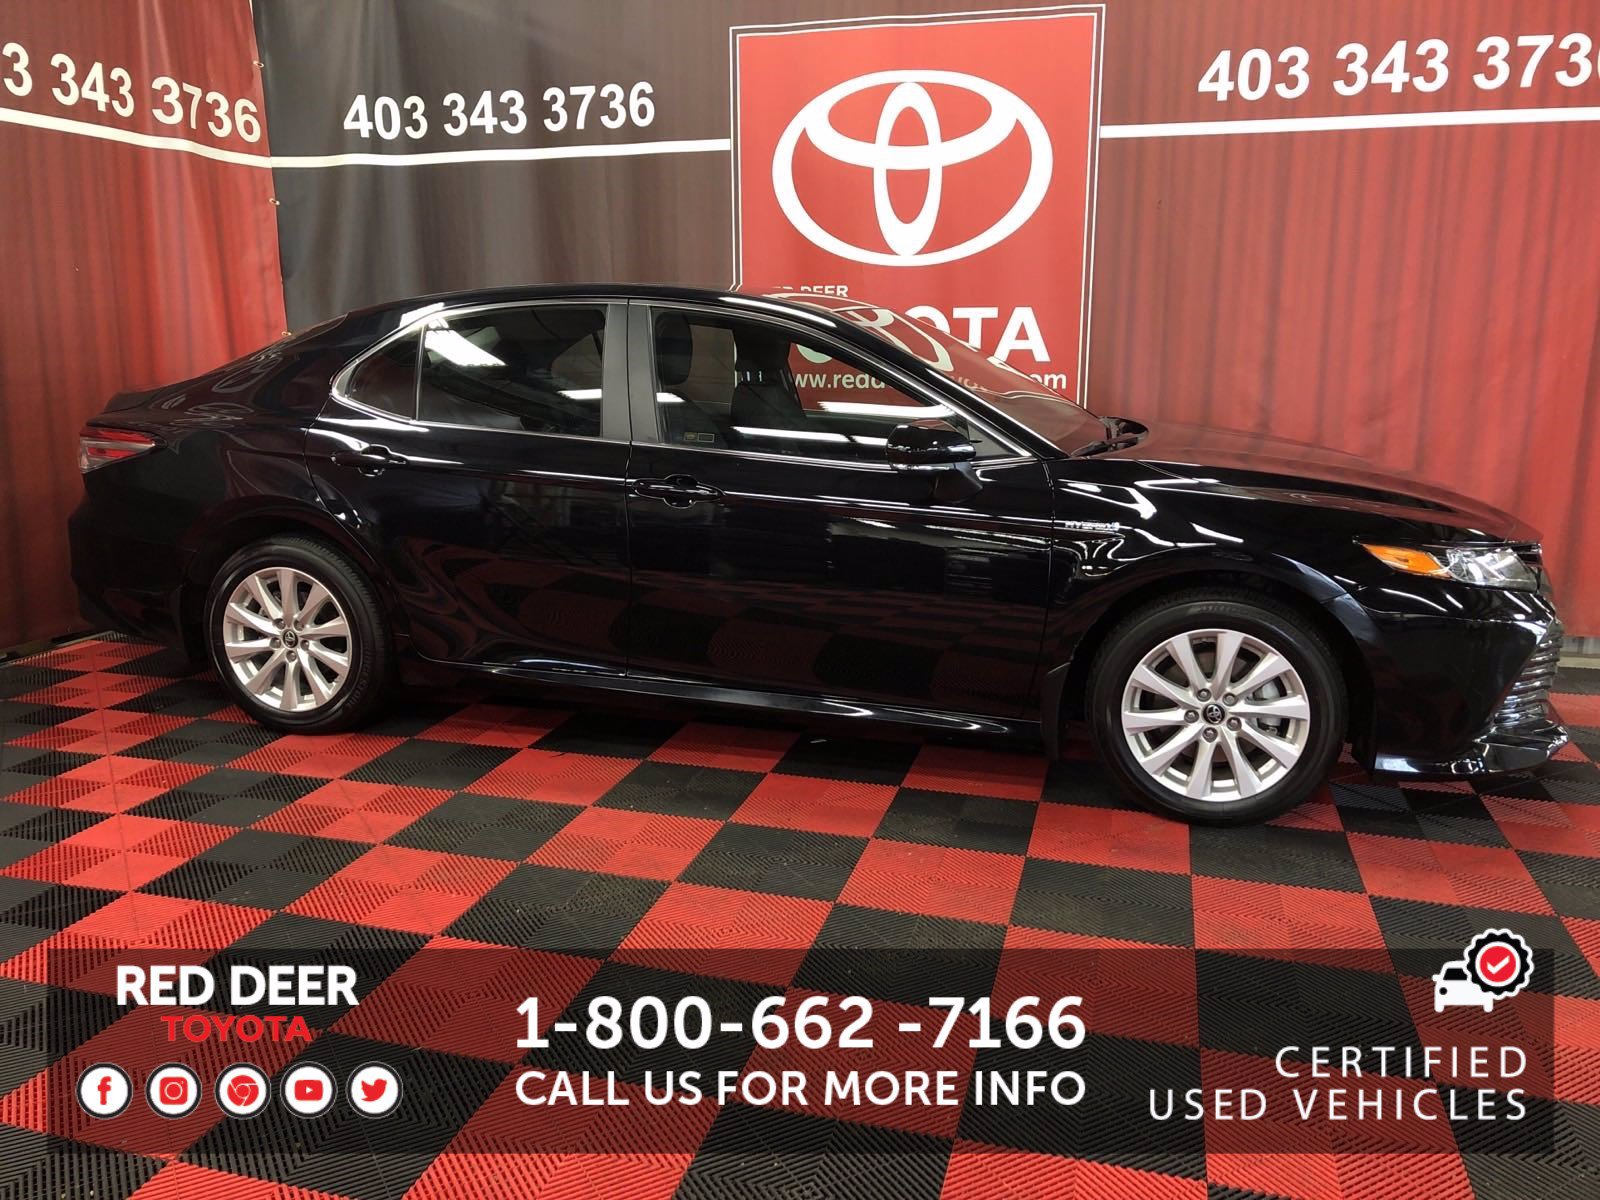 Certified Pre-Owned 2018 Toyota Camry Hybrid LE FWD 4dr Car